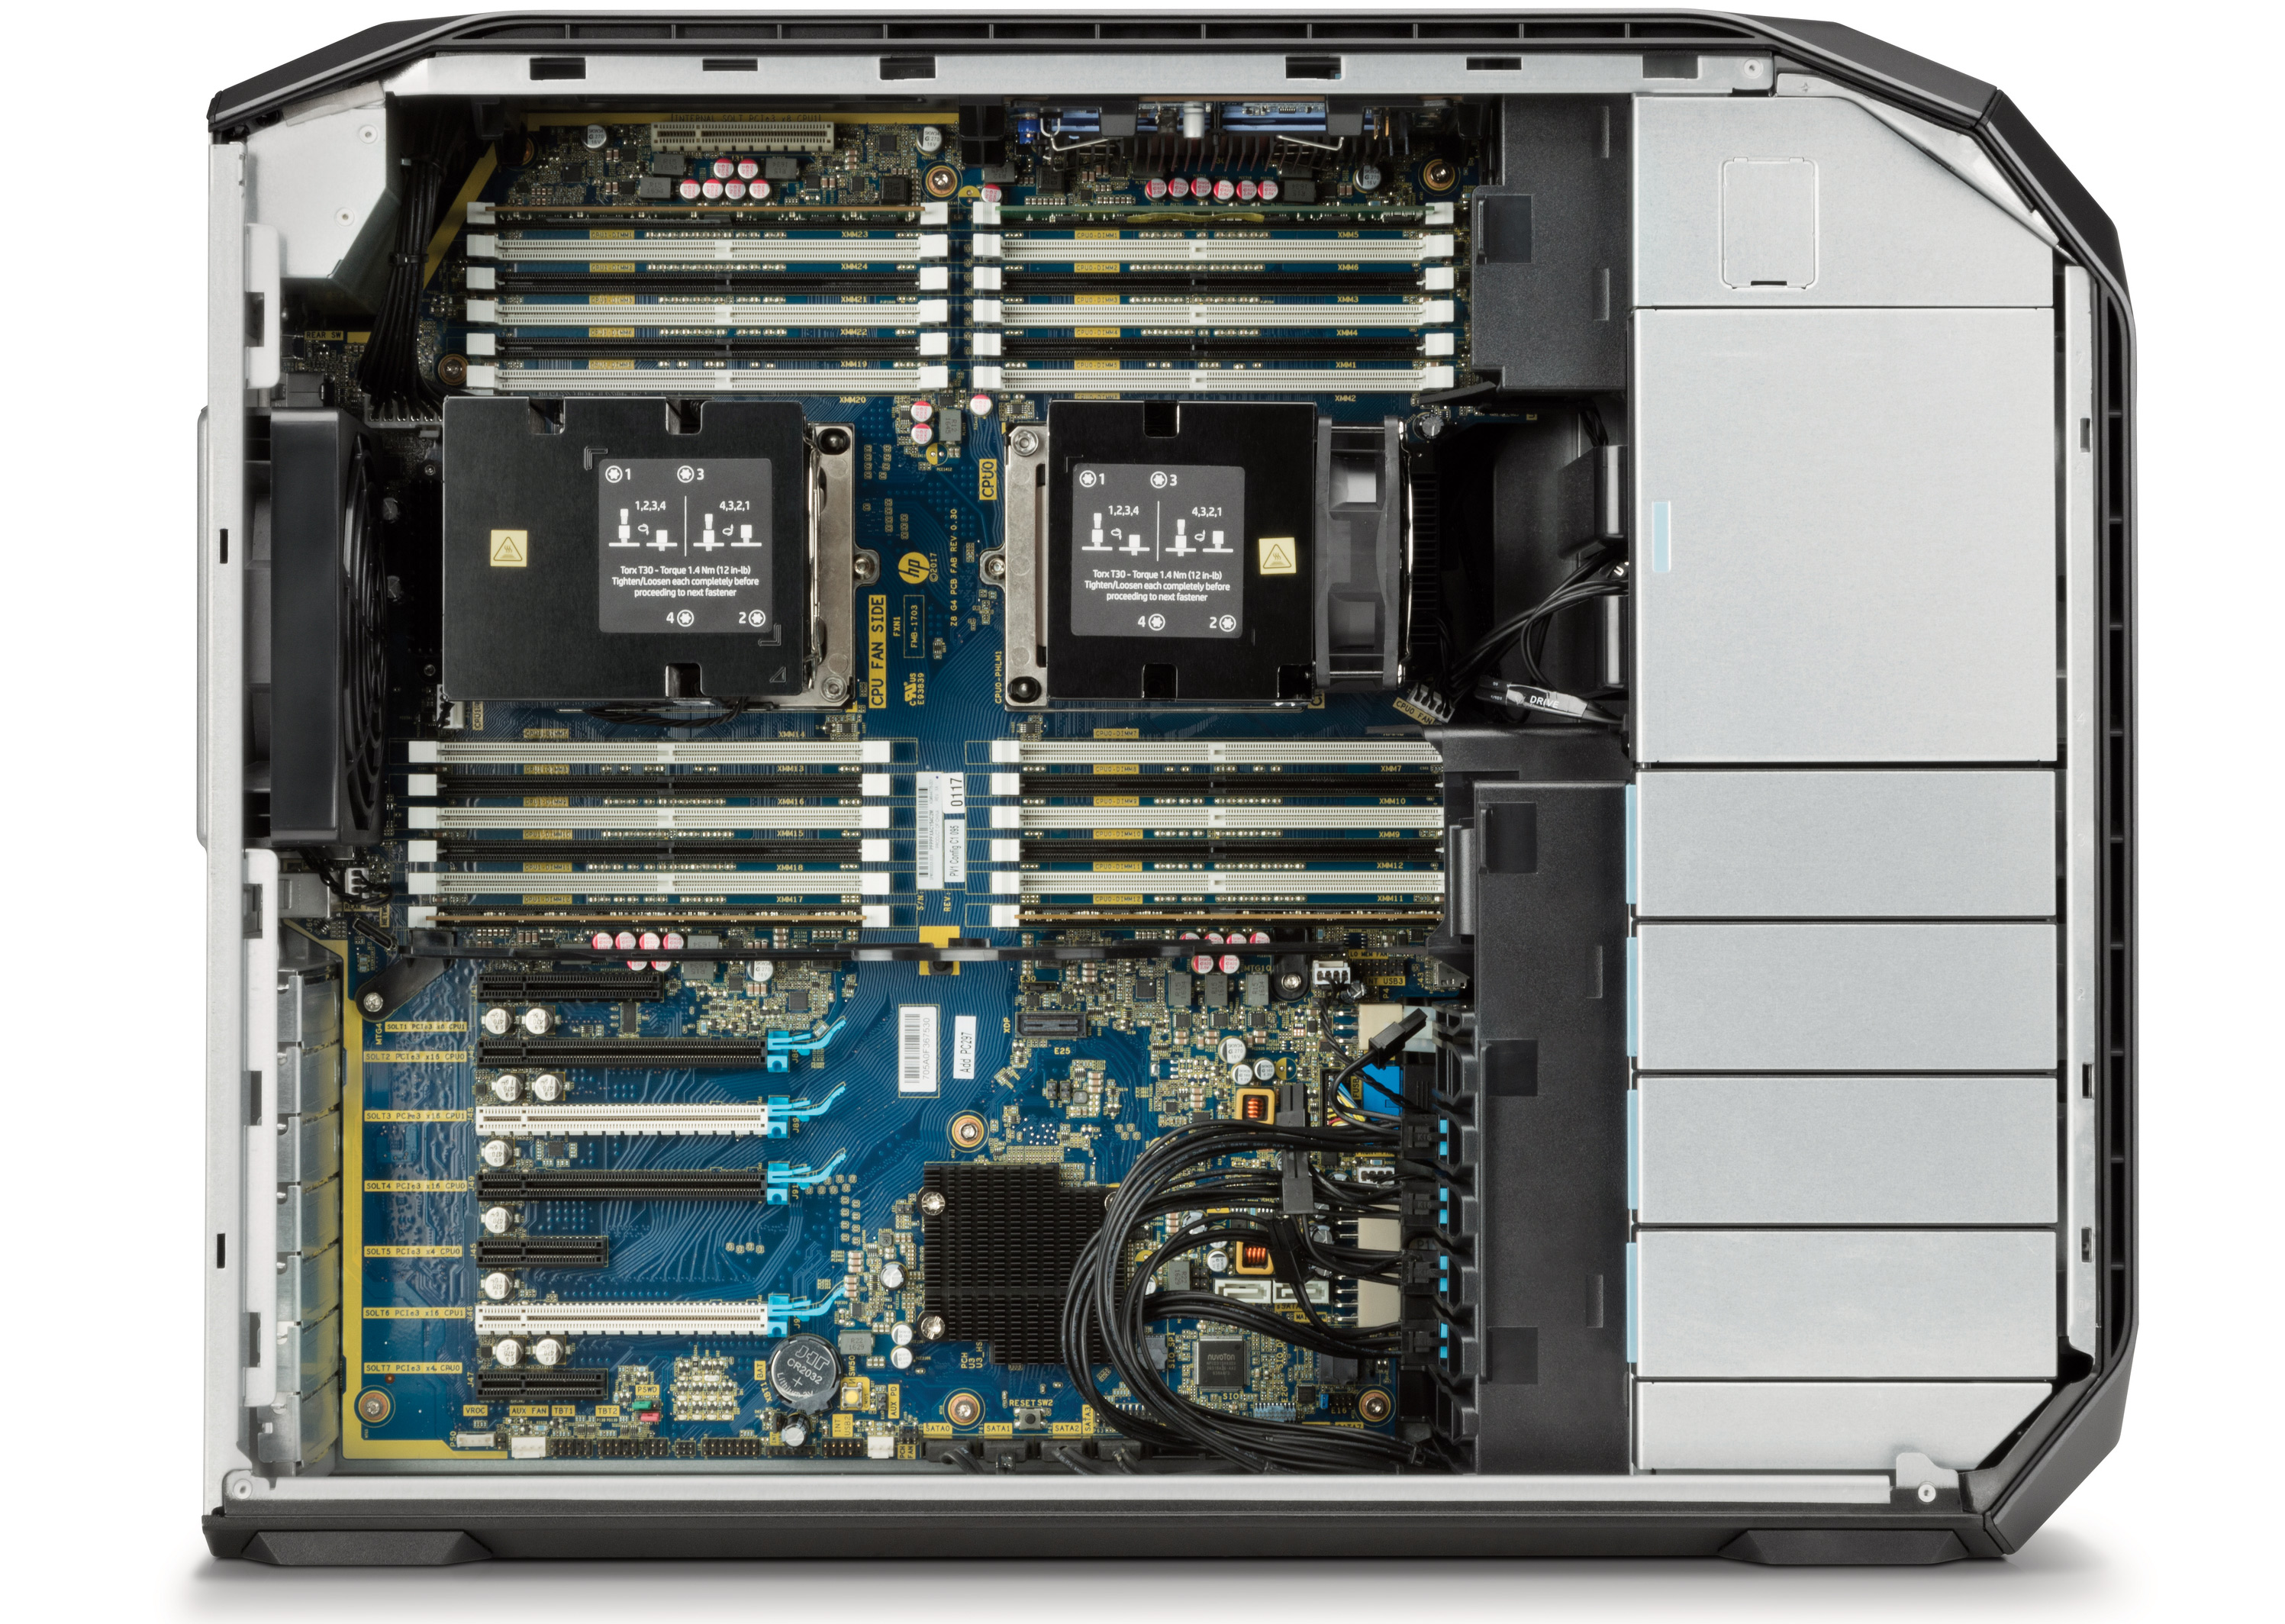 HP Updates Z8 Workstations Up To 56 Cores 3 TB RAM 9